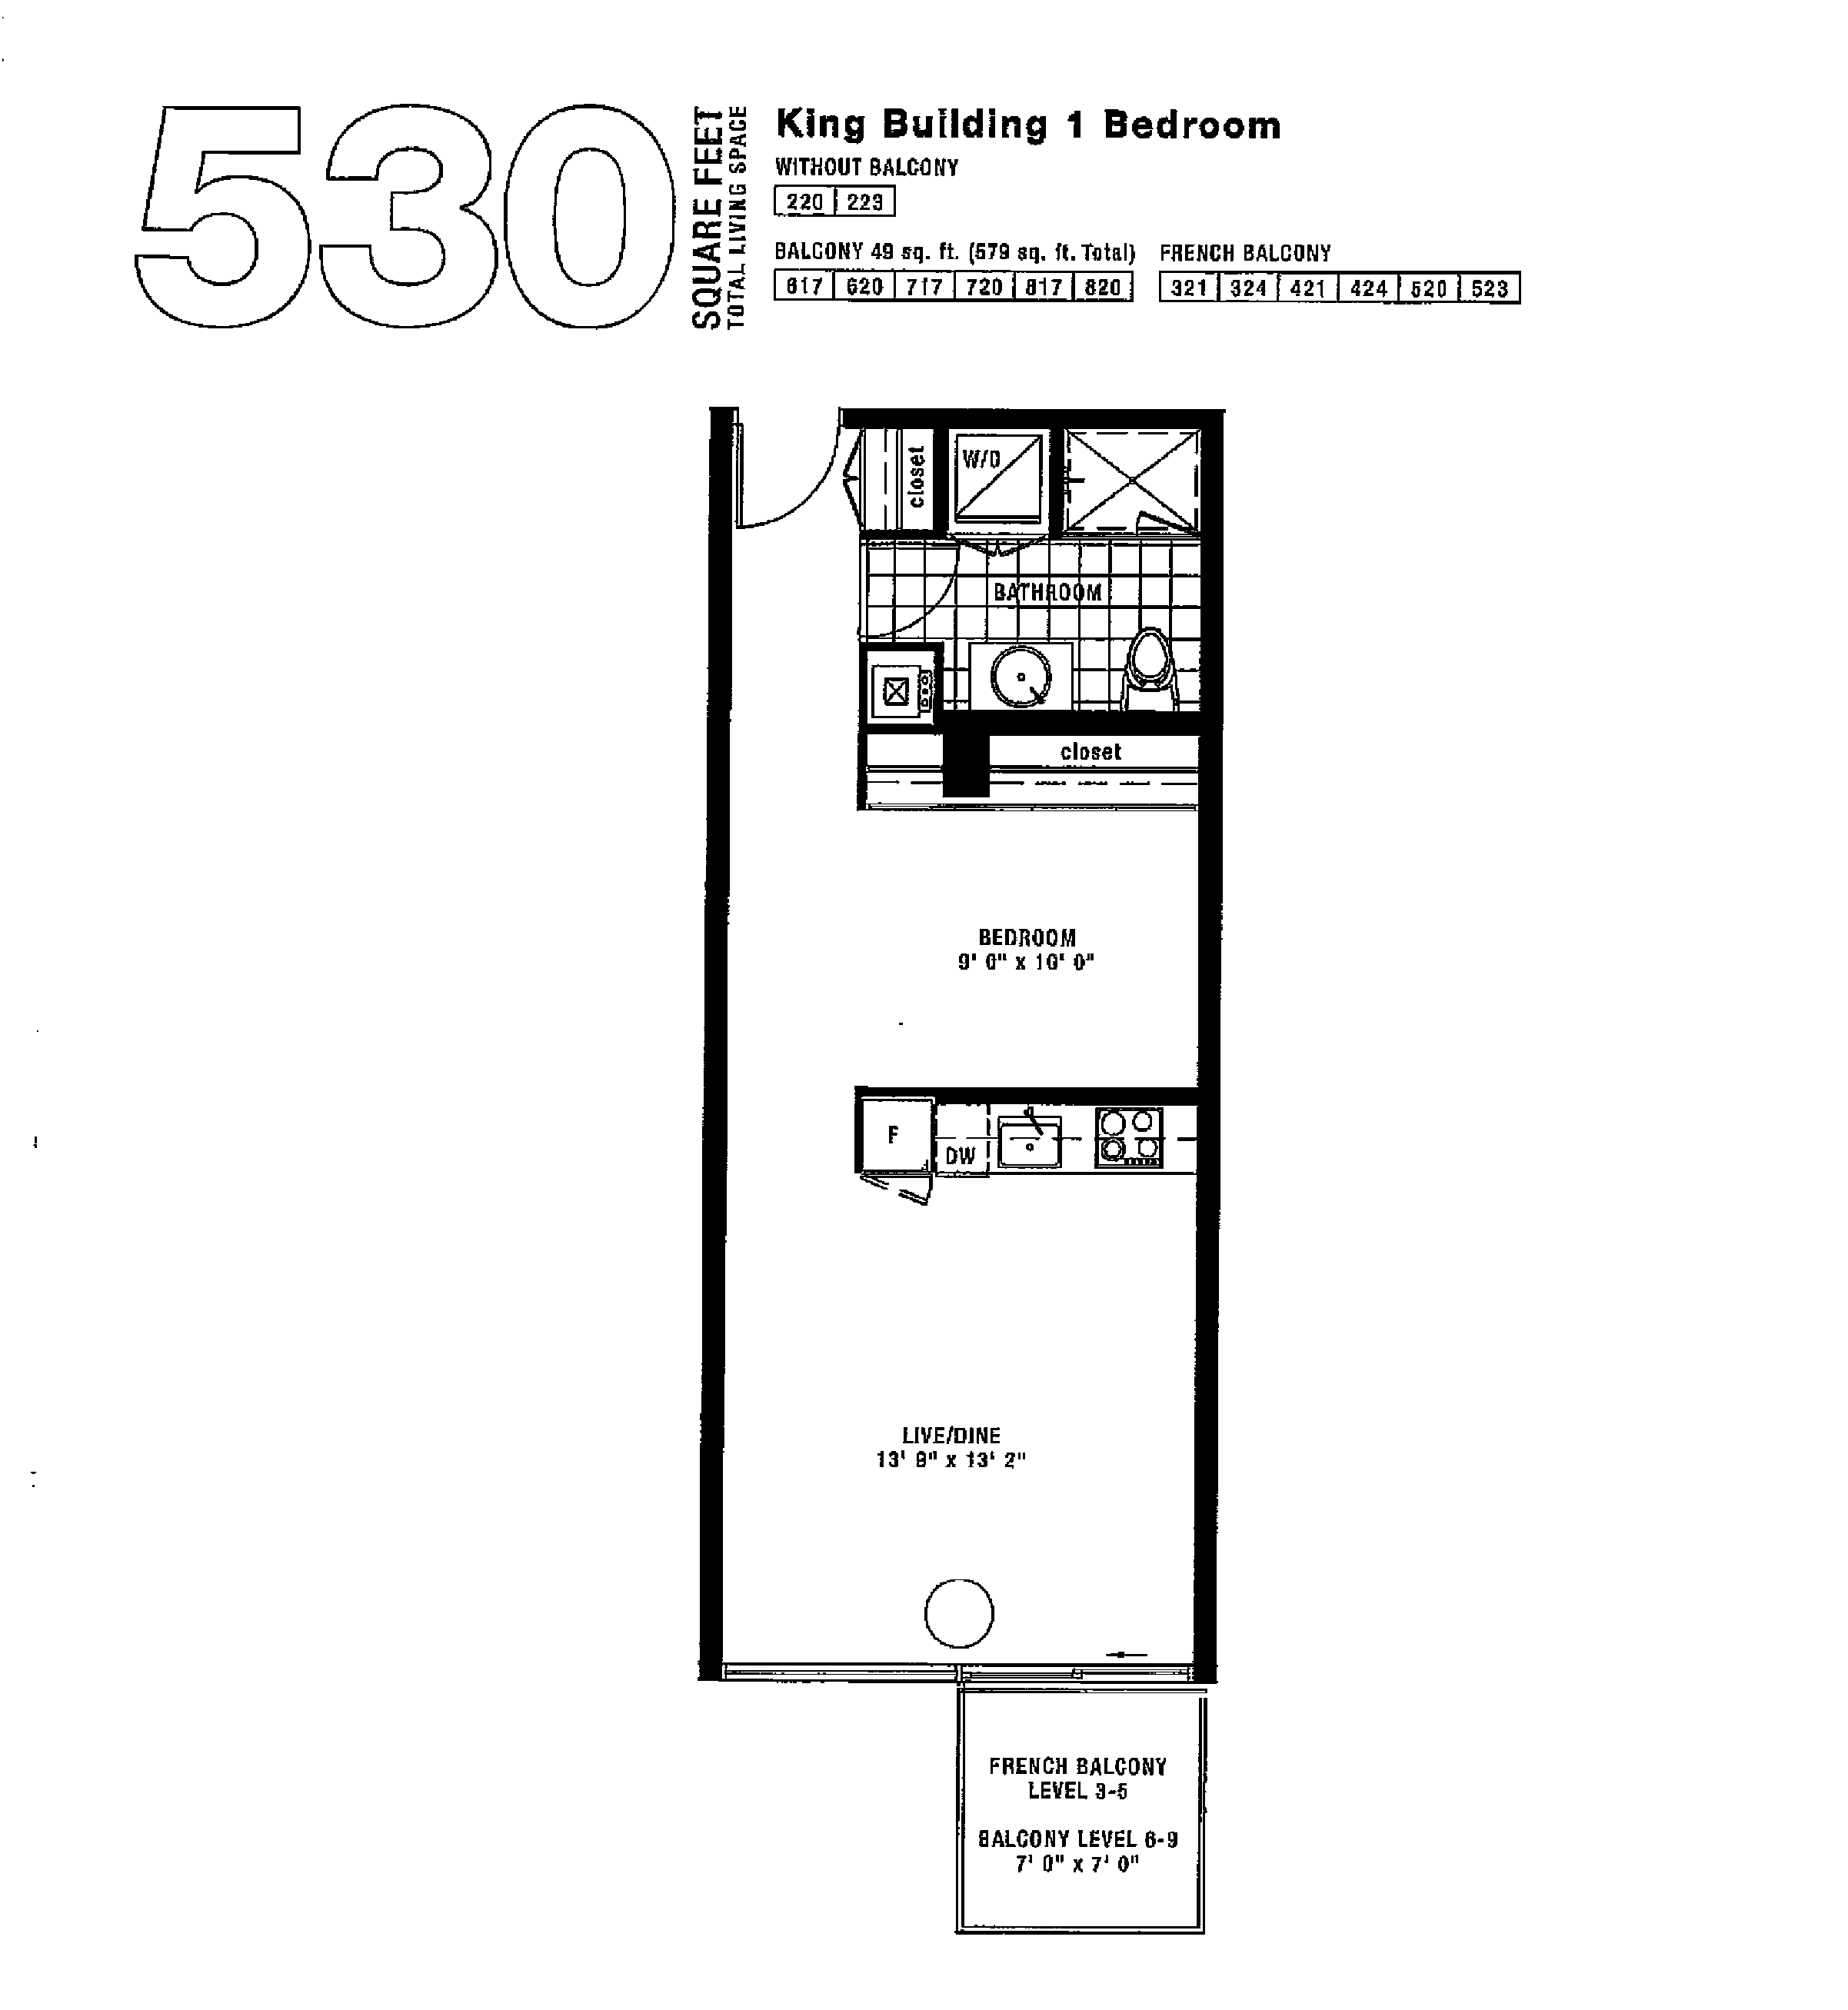 530 SQ FT FLOORPLAN - FASHION HOUSE CONDOS - CONTACT YOSSI KAPLAN